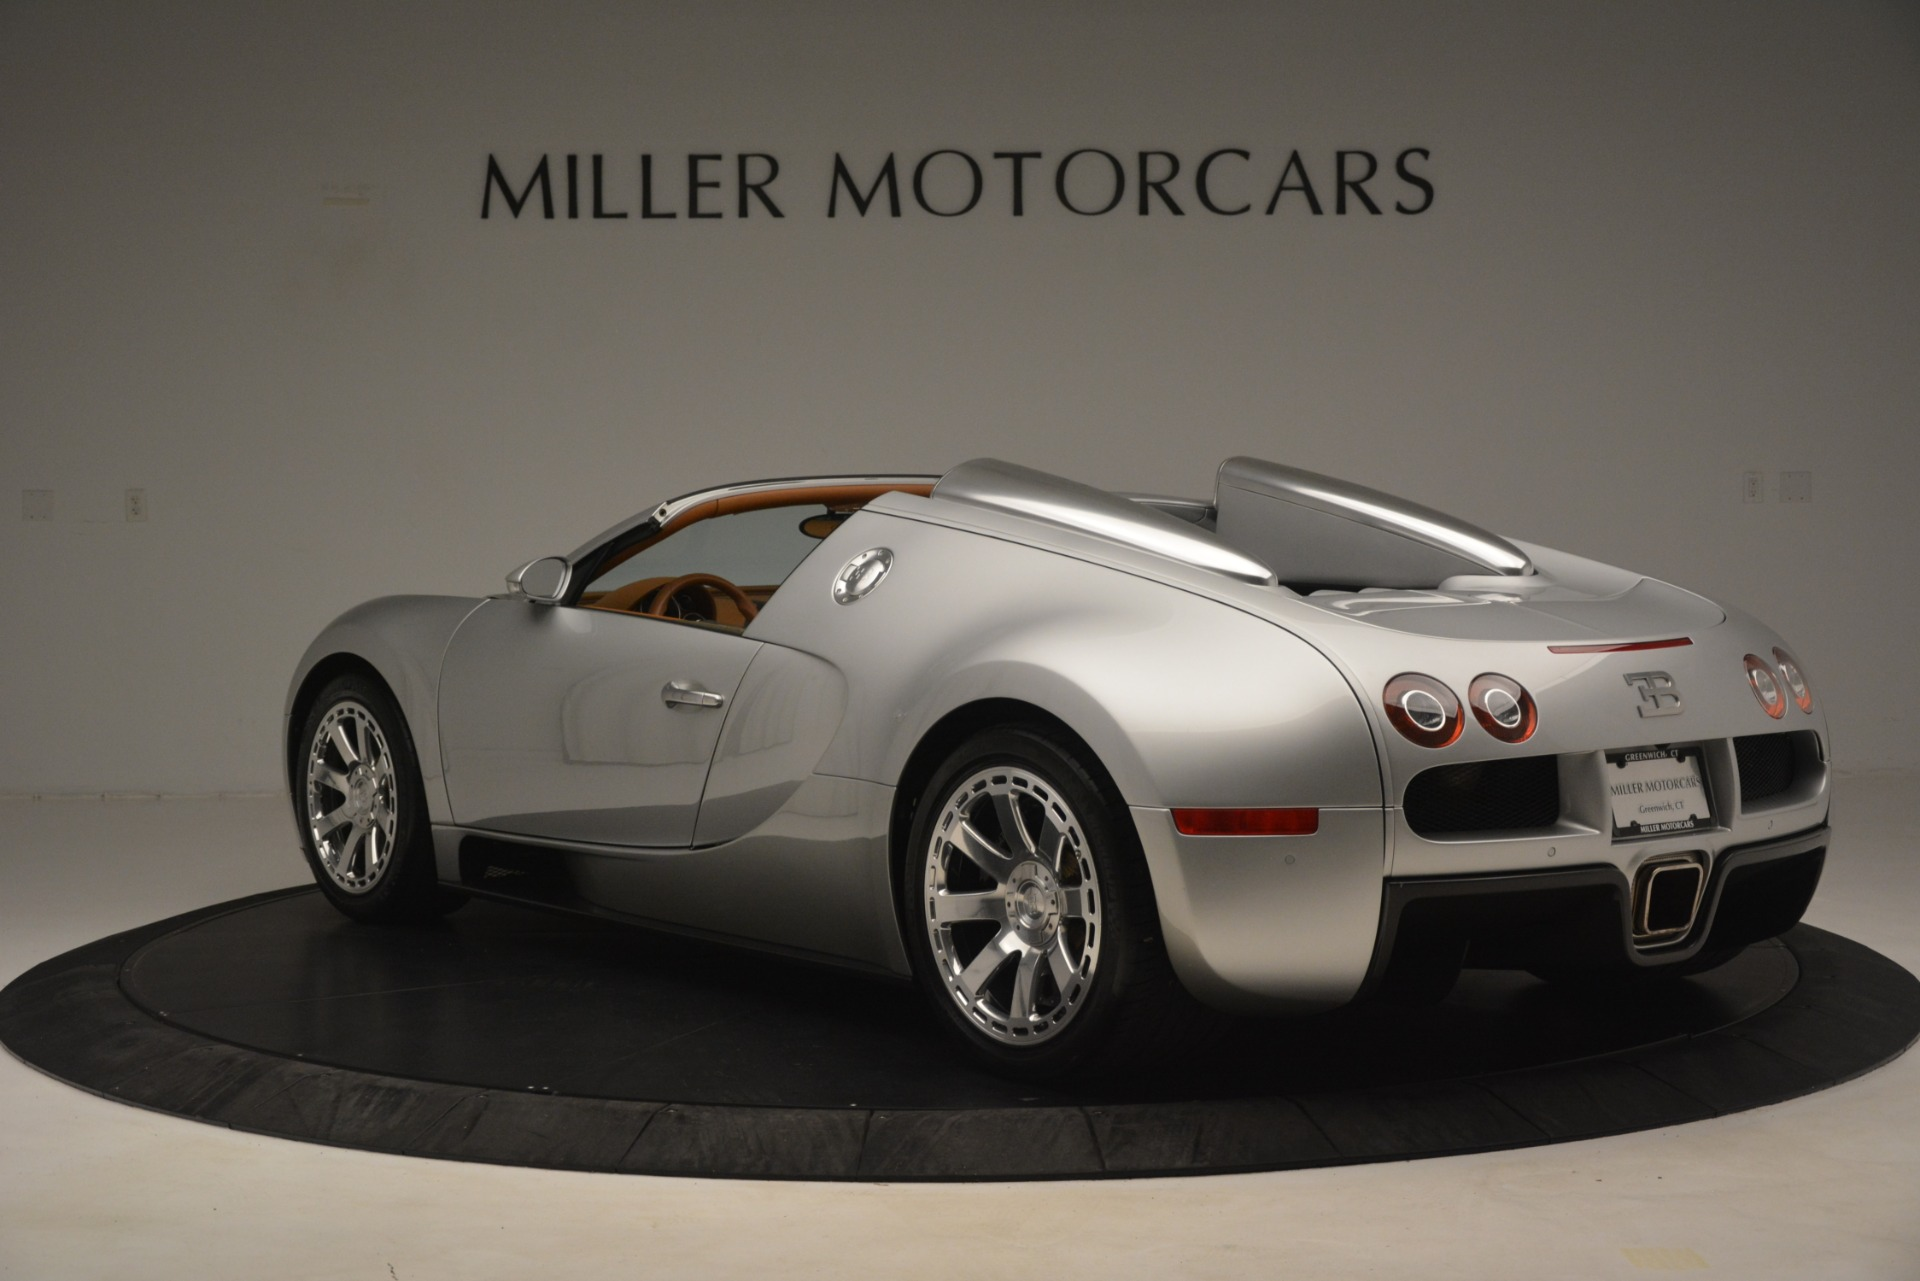 Used 2010 Bugatti Veyron 16.4 Grand Sport For Sale In Westport, CT 3159_p6